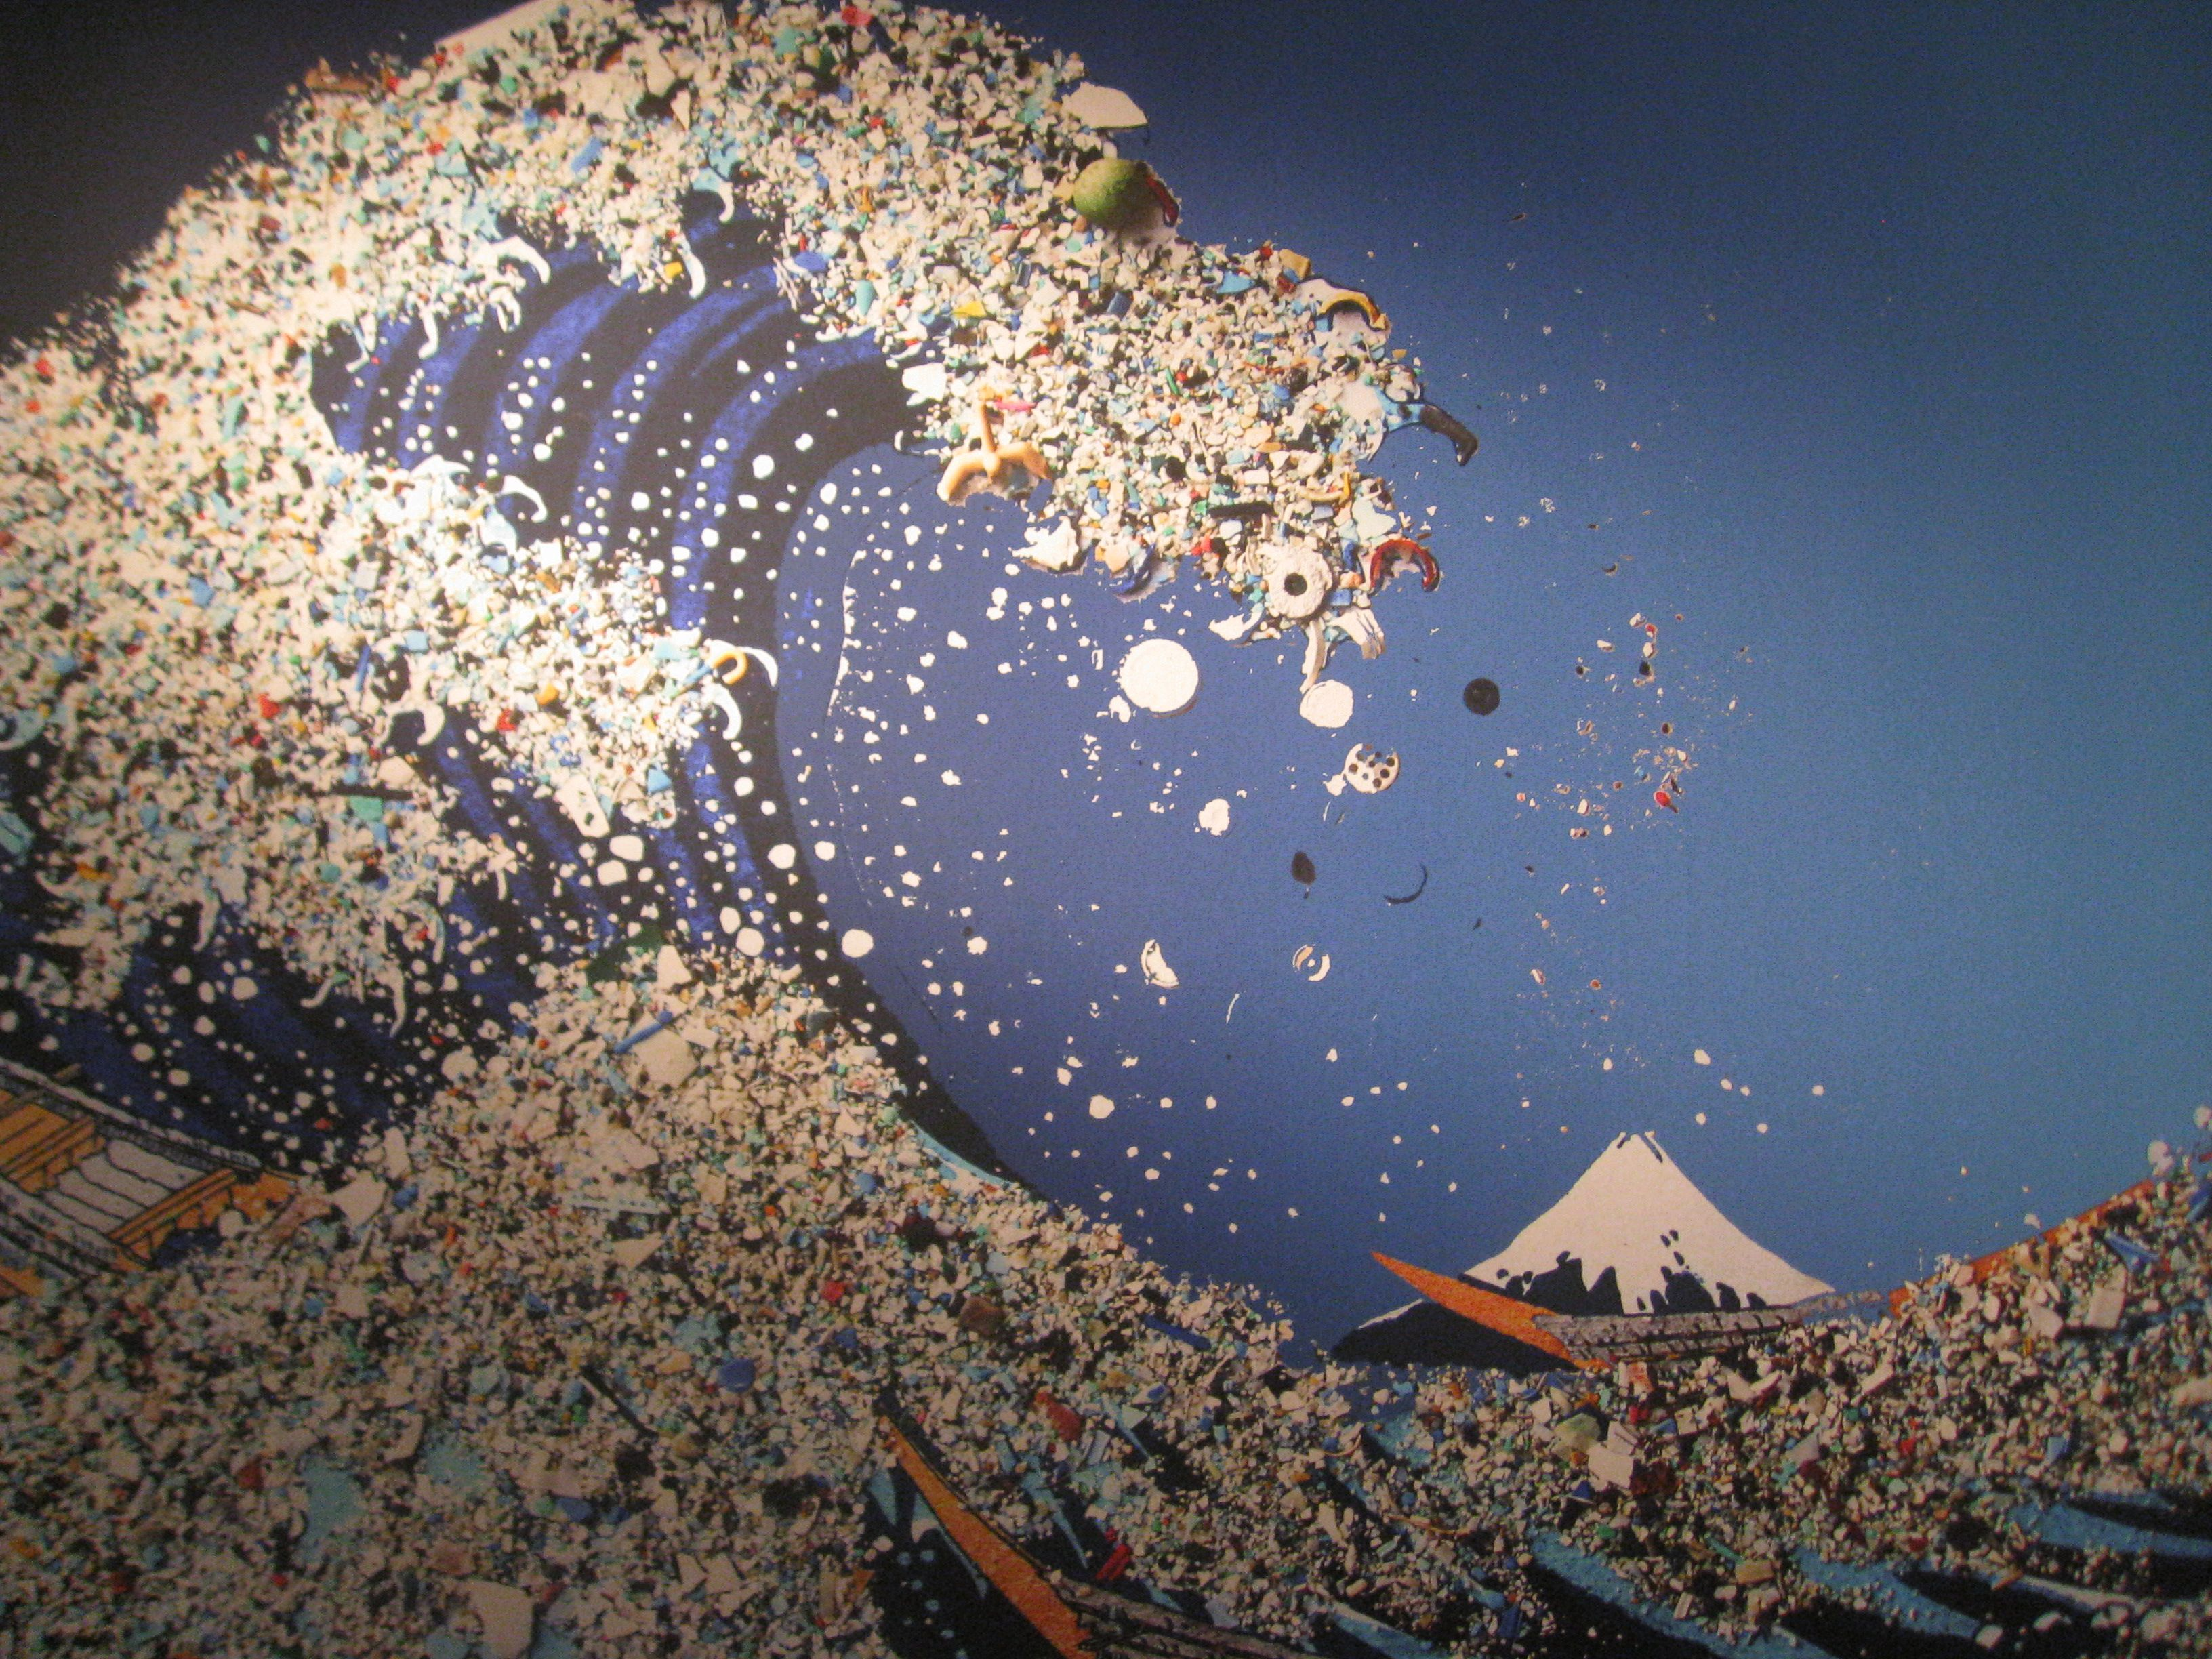 project kaisei Project kaisei (from 海星, kaisei, ocean planet in japanese ) is a scientific and commercial mission to study and clean up the great pacific garbage patch , a large body of floating debris trapped in the pacific ocean by the currents of the north pacific gyre.